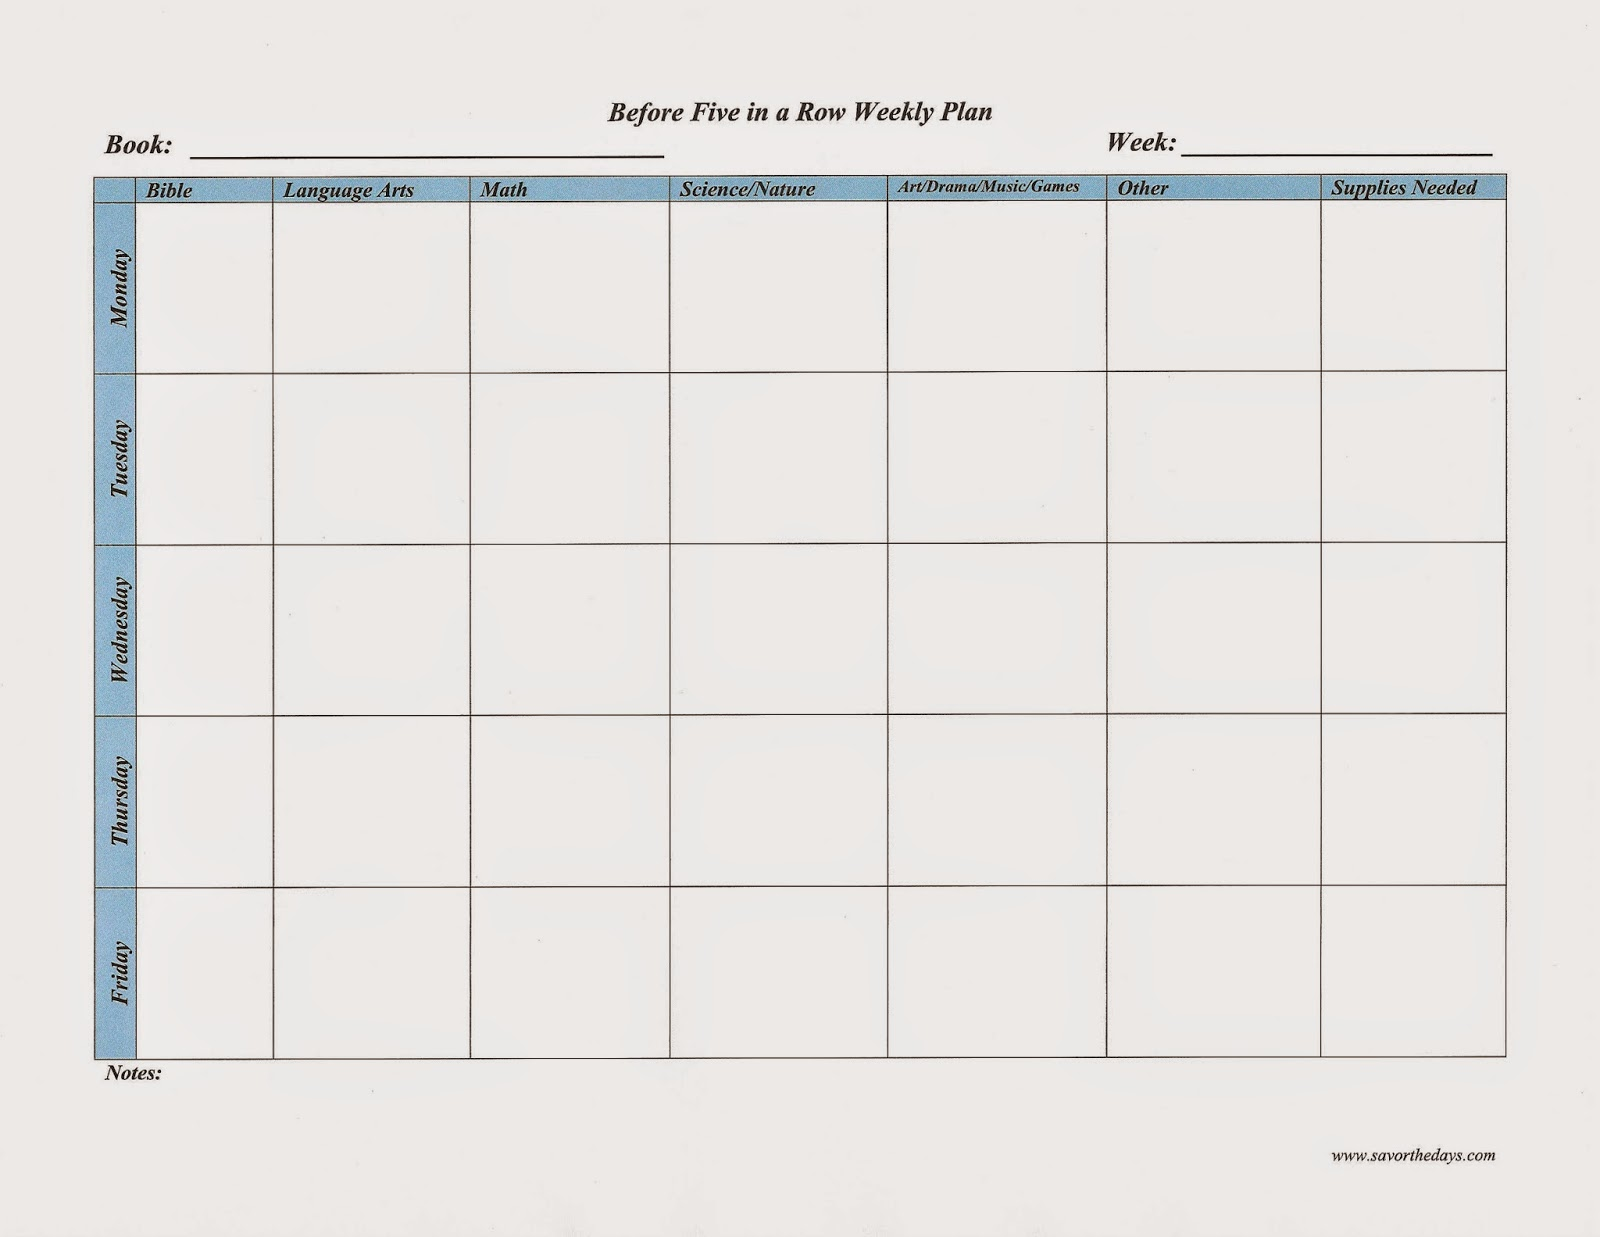 Before Five in a Row Weekly Plan